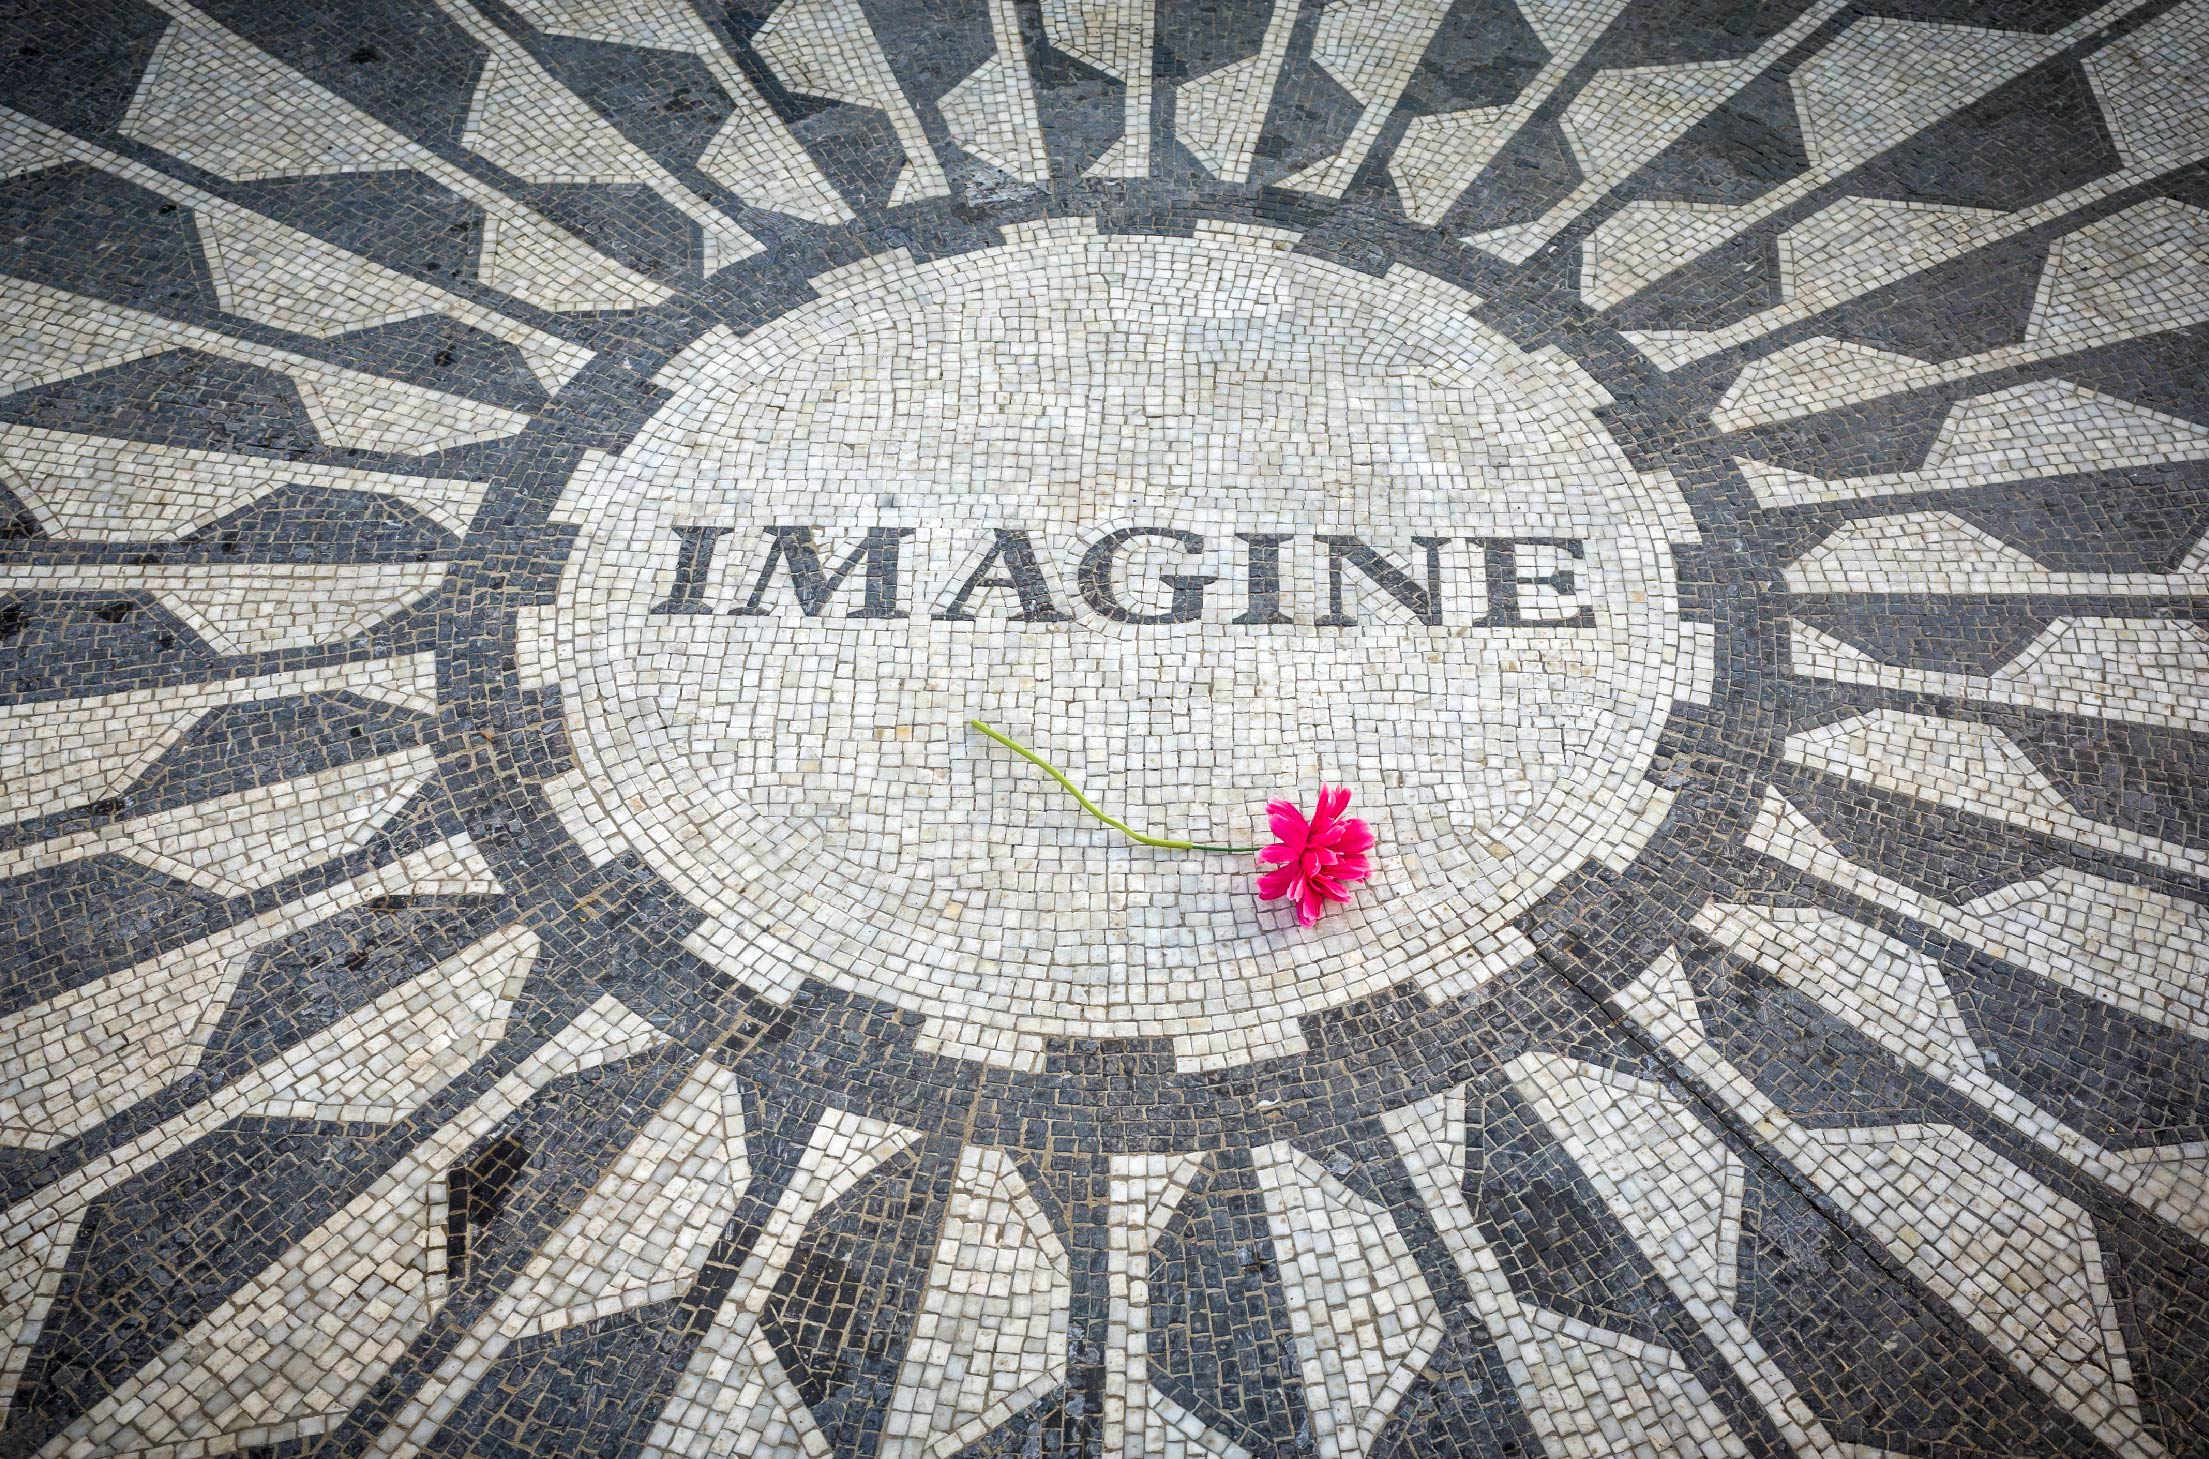 The stone mosaic bearing the title of Lennon's song: Imagine. Located in New York City's Central Park. Imagine solving unthinkable problems.